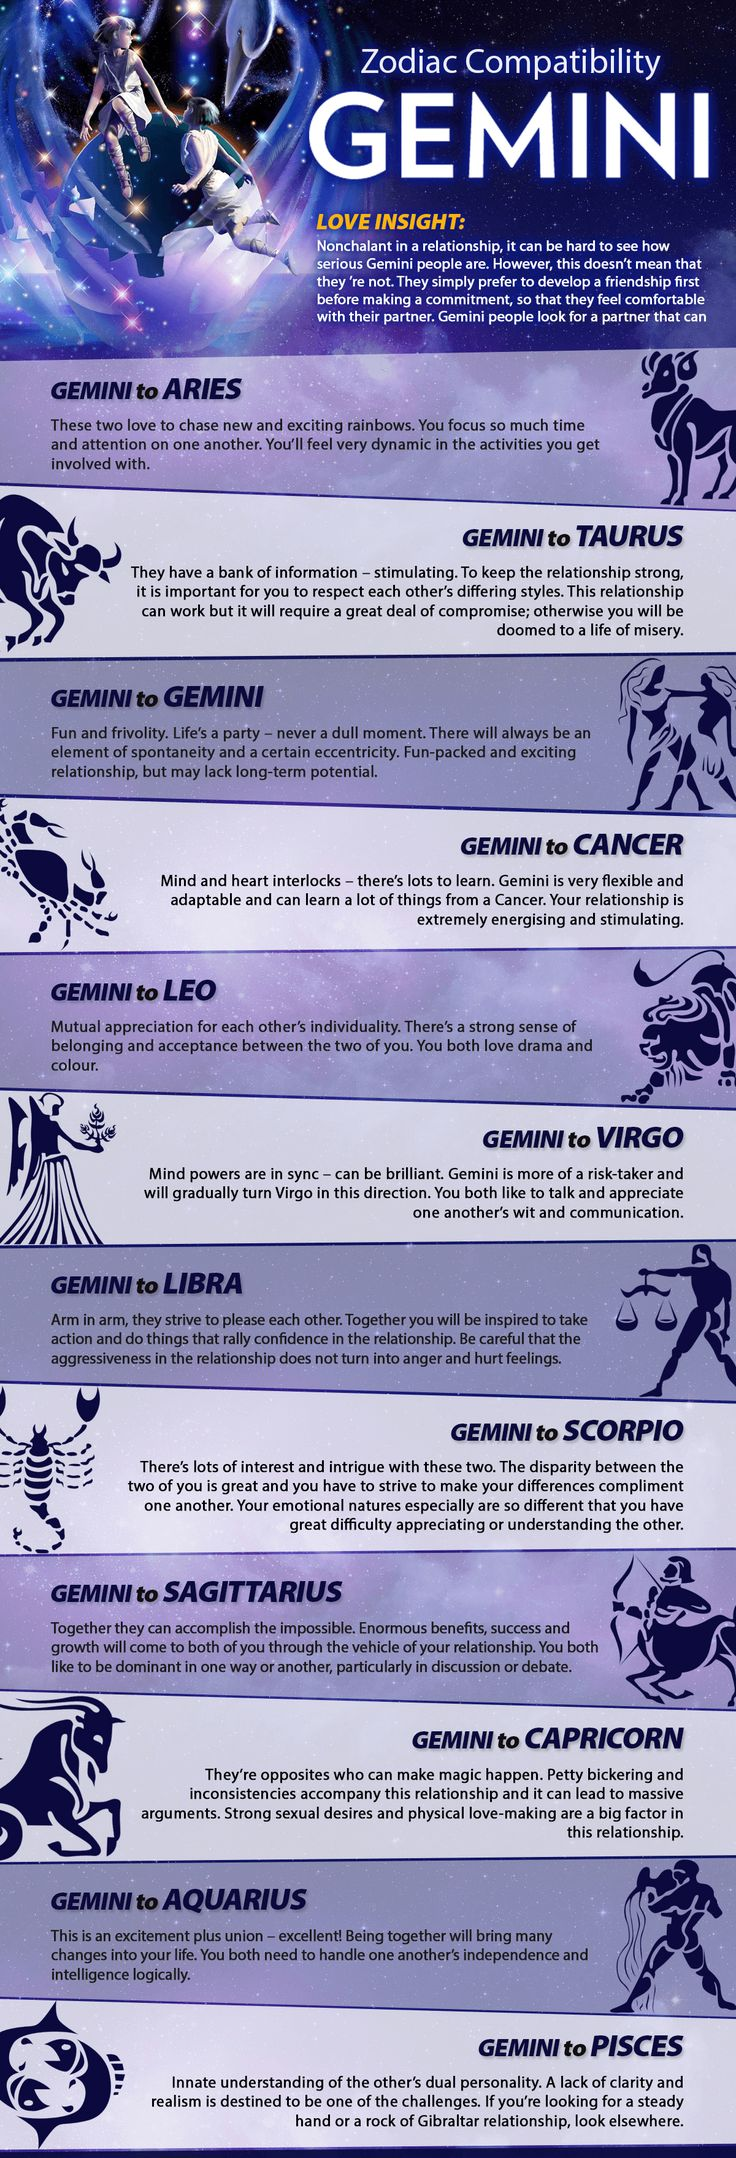 Sex with a Gemini